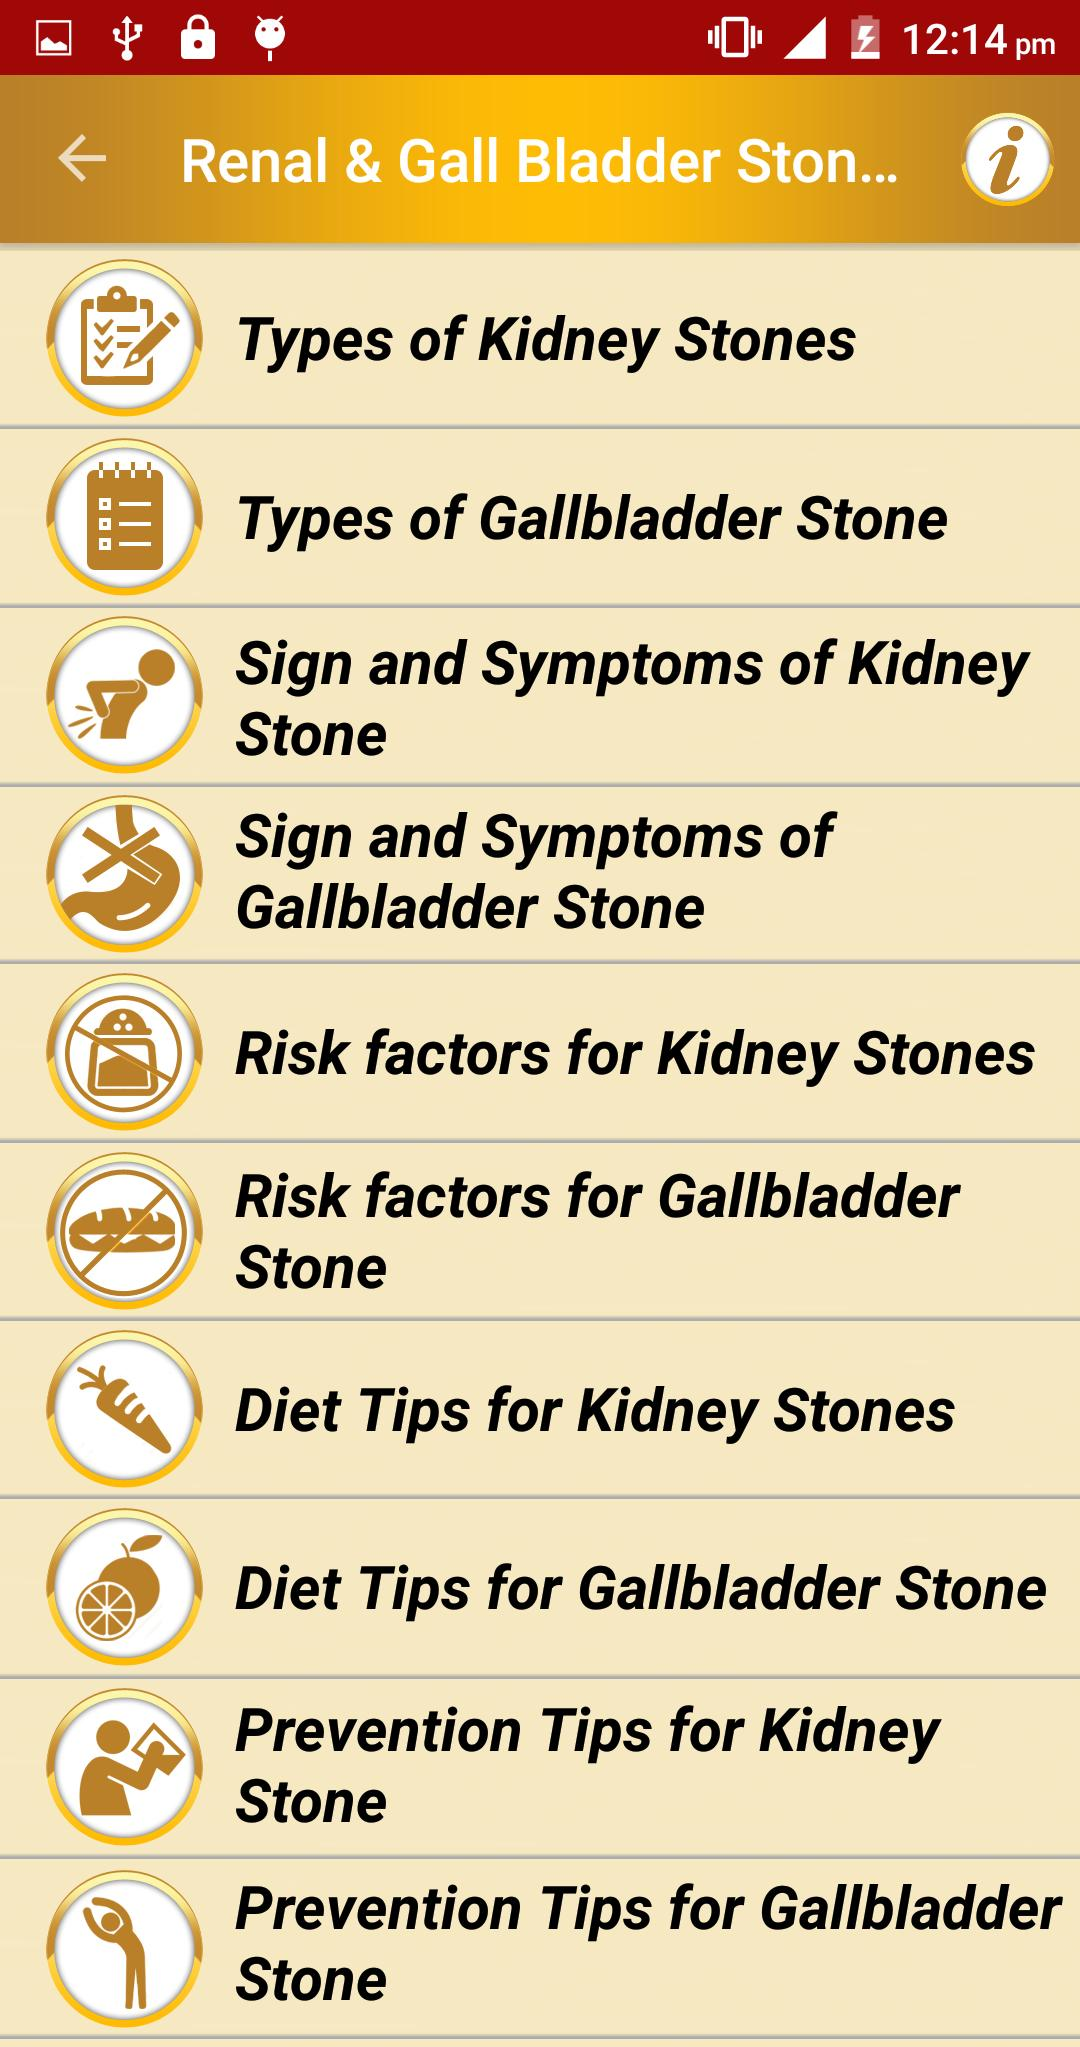 Renal Gall Bladder Stone Diet For Android Apk Download